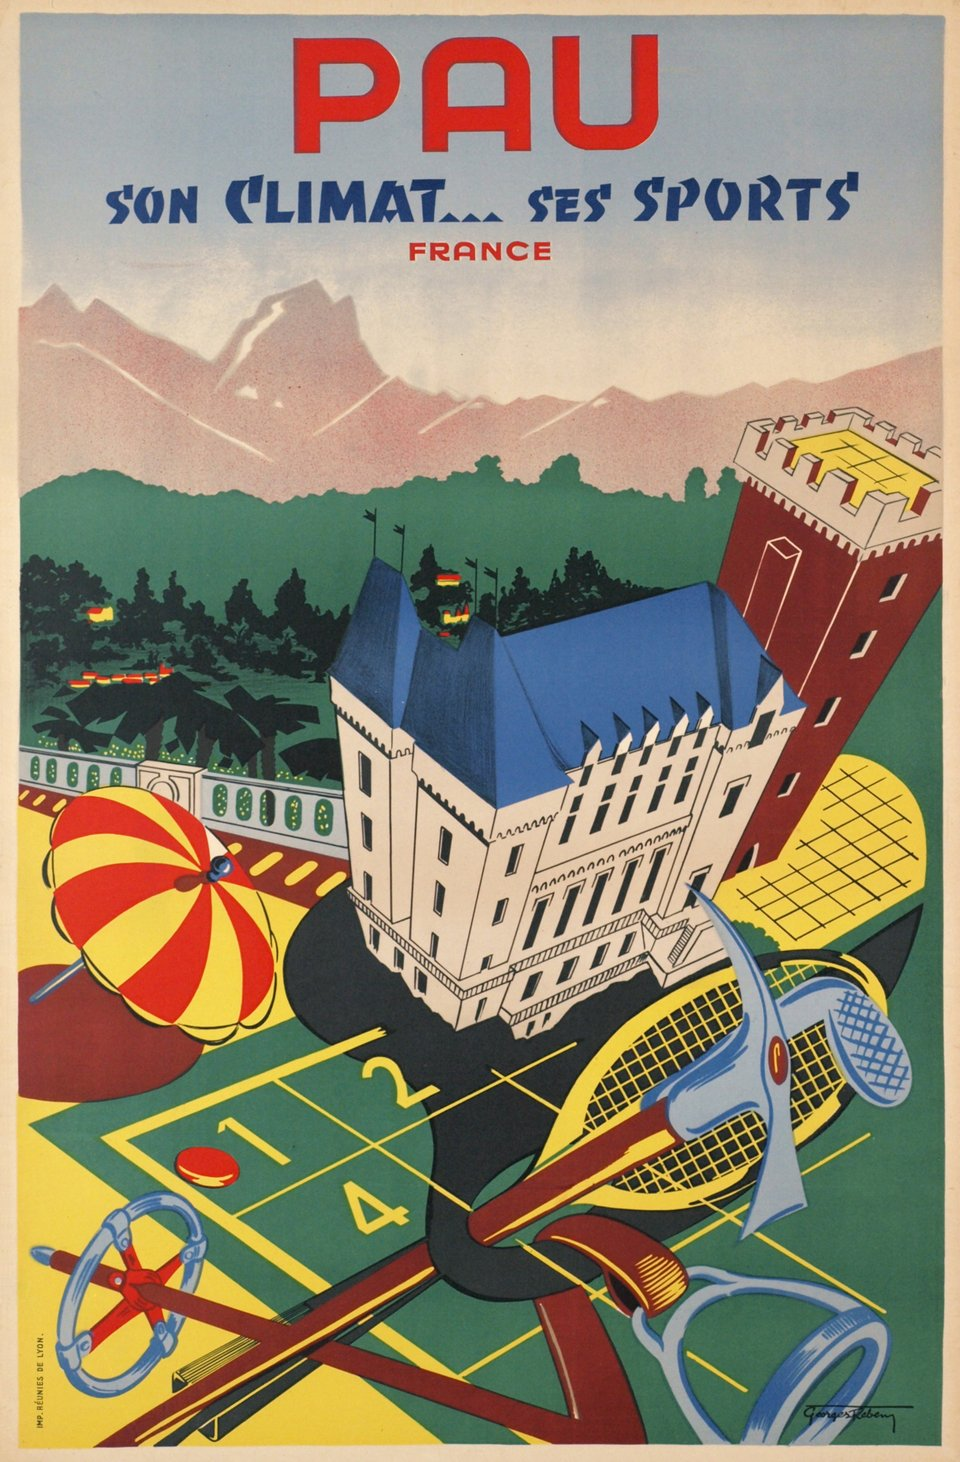 Pau, son climat...ses sports, France – Vintage poster – Georges REBEN – 1935